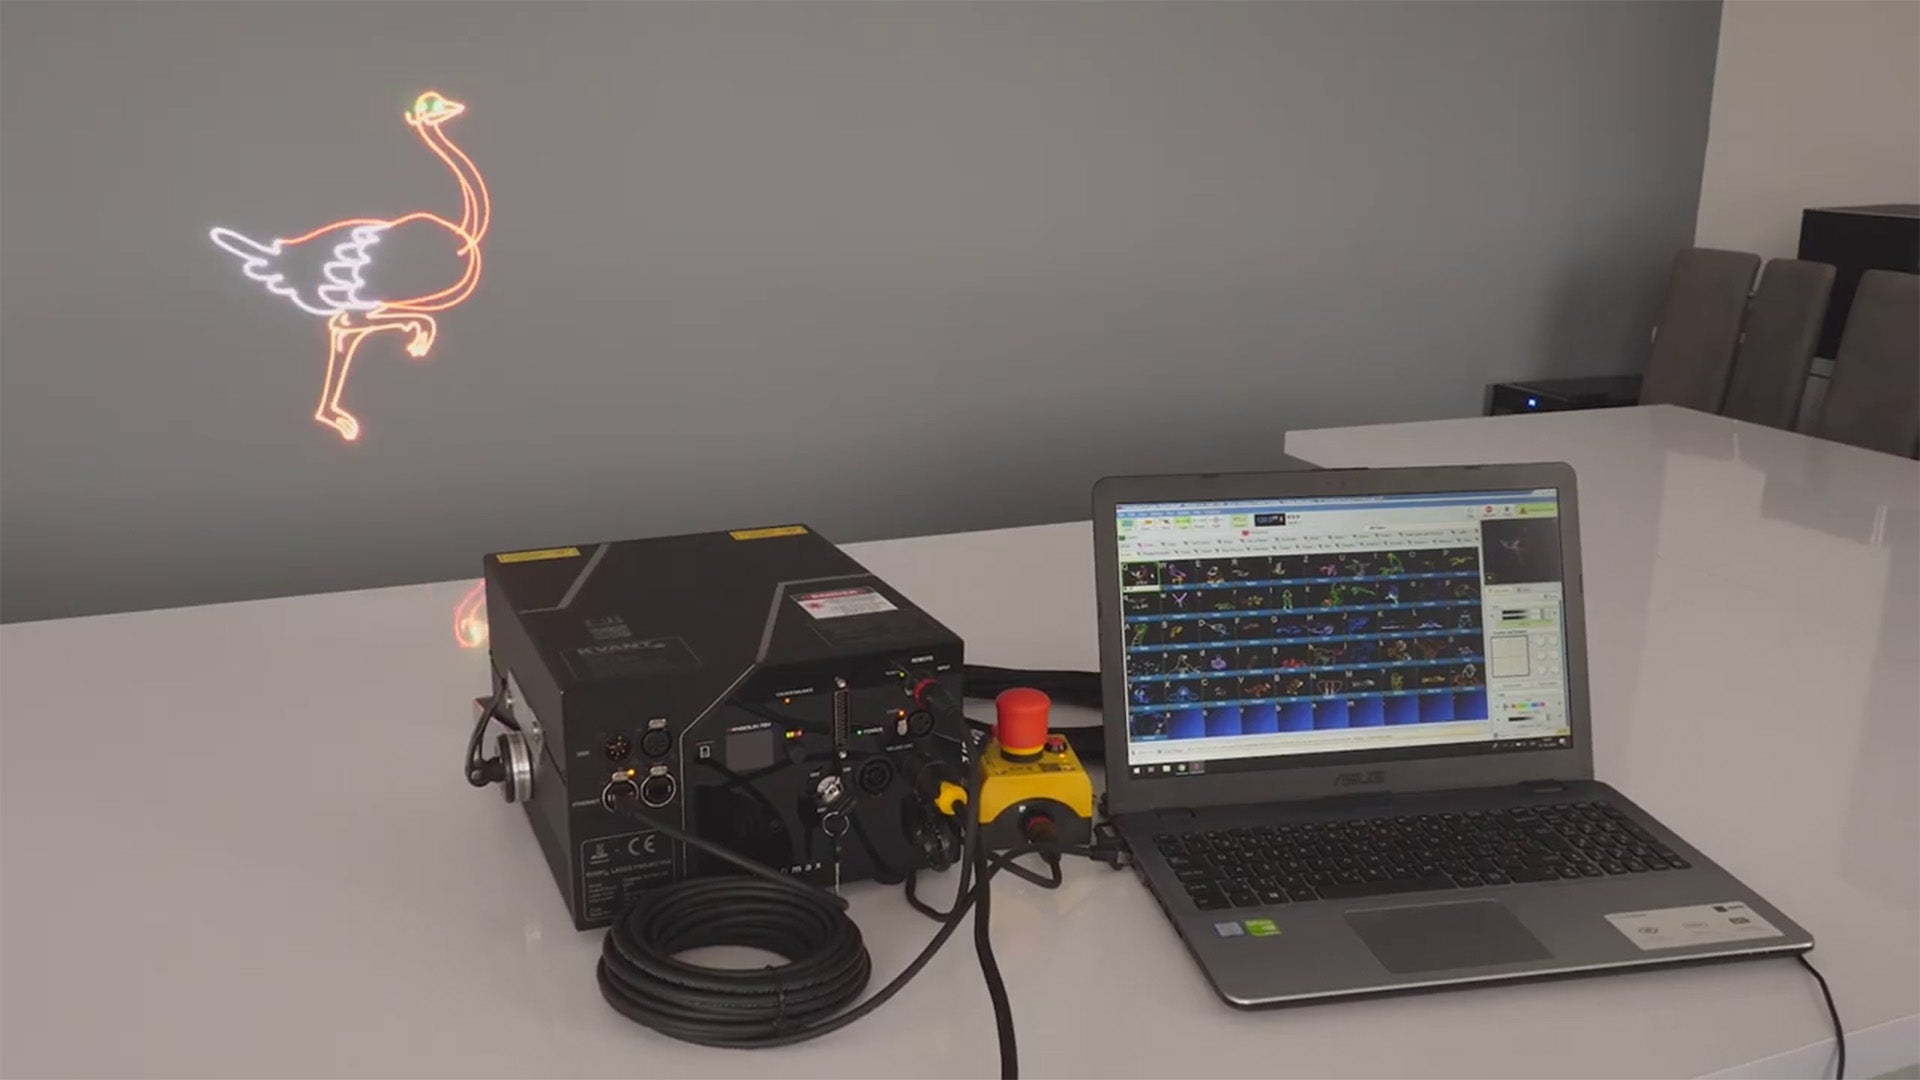 How To Setup And Start Your KVANT Laser Display System